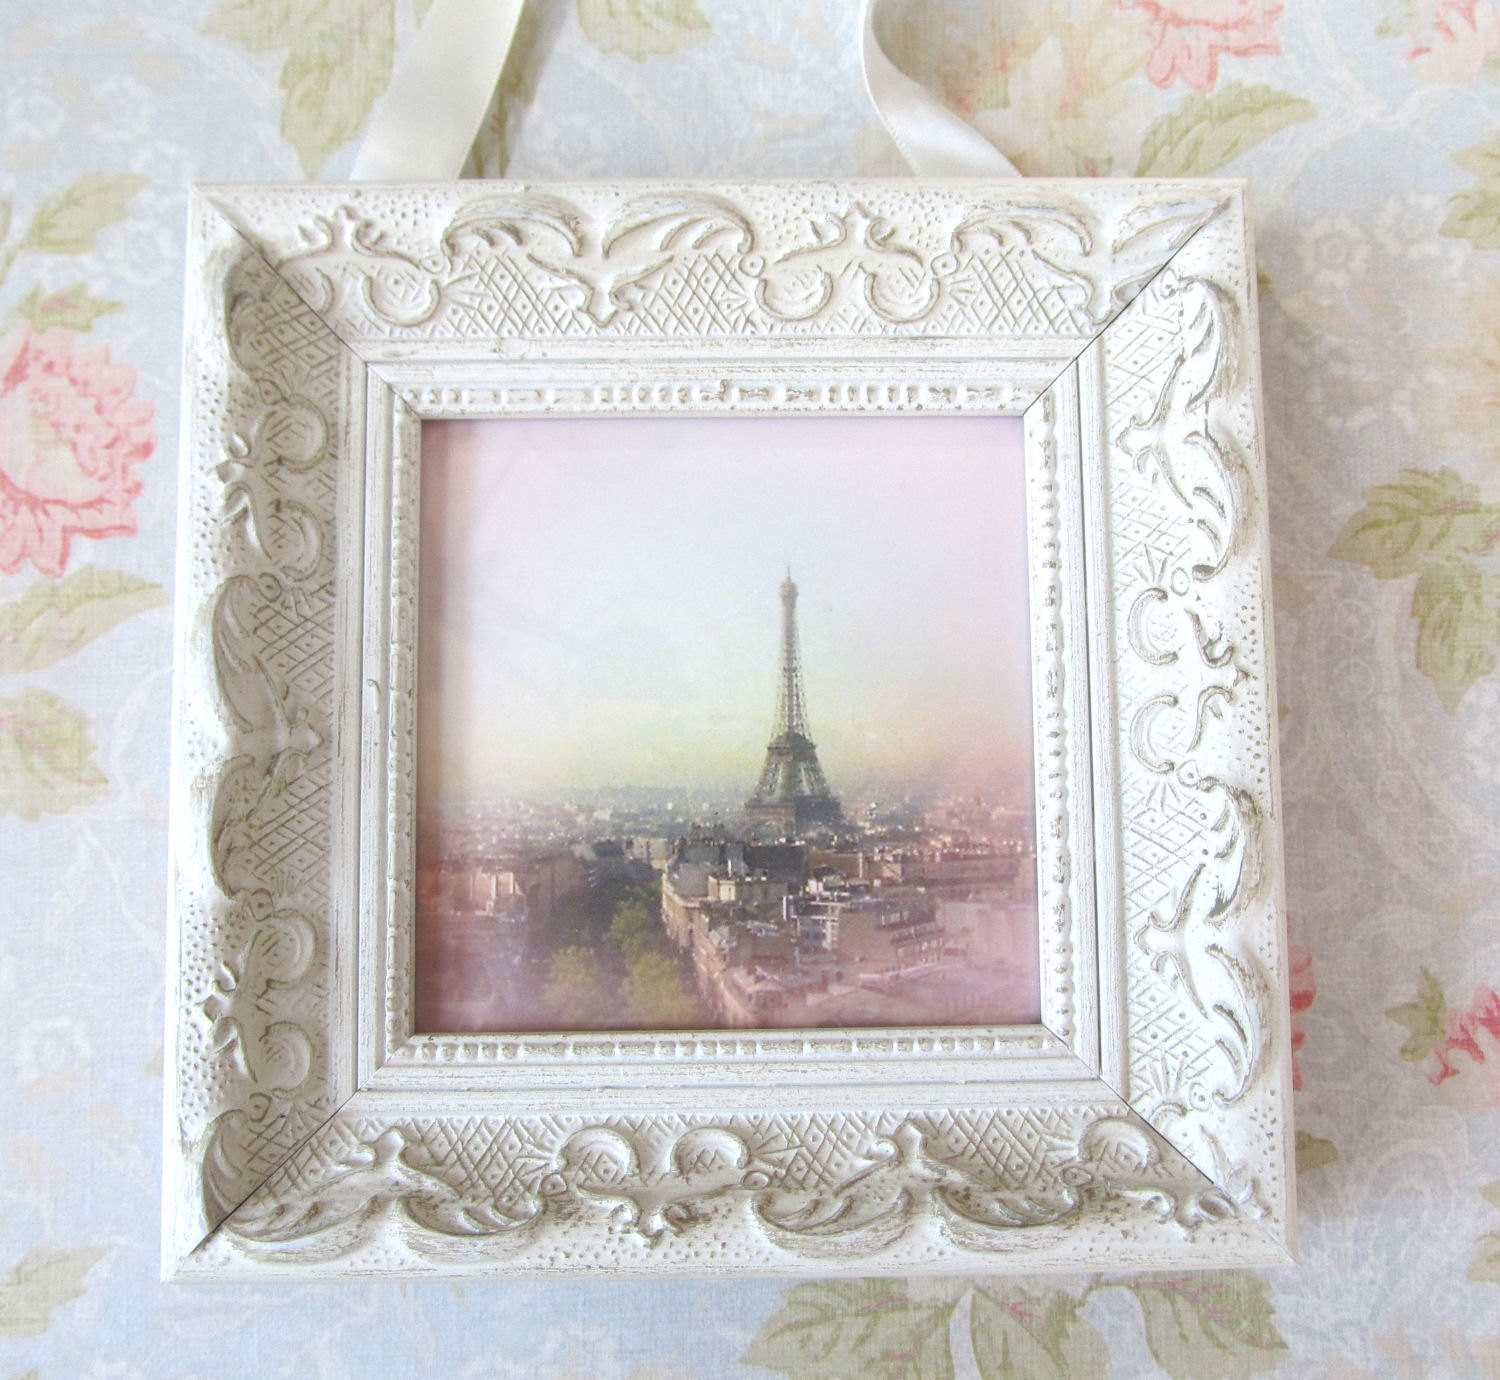 Best ideas about Shabby Chic Art . Save or Pin Pink Paris with Frame Shabby Chic Decor by Now.